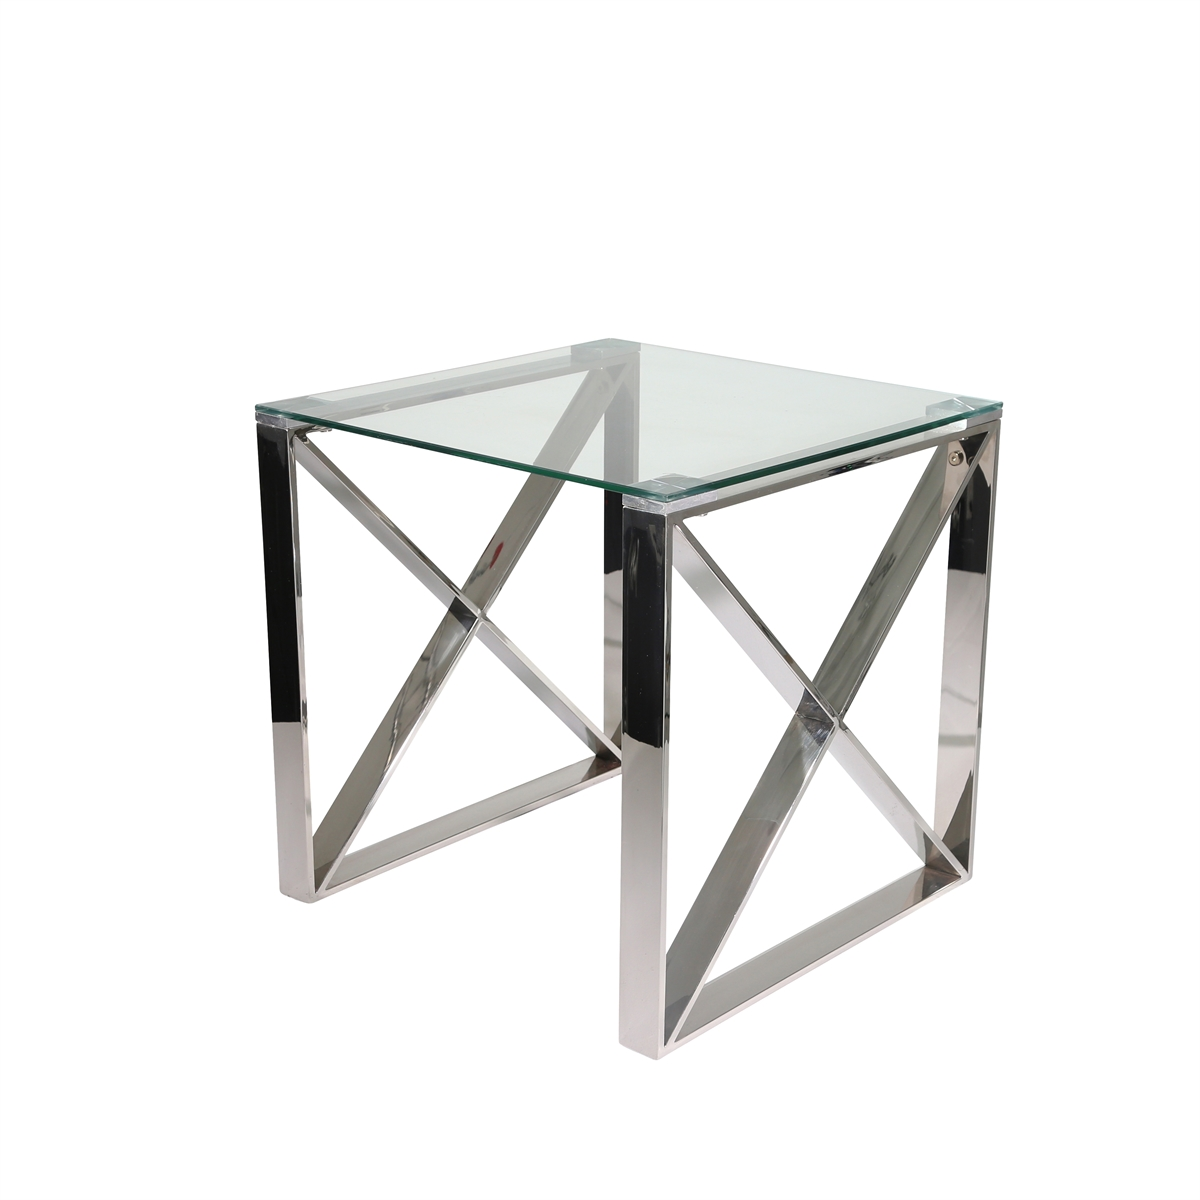 silver metal glass accent table sagebrook home log for pricing and availability material french beds bedroom furniture packages white bedside tables kmart shoe organizer target